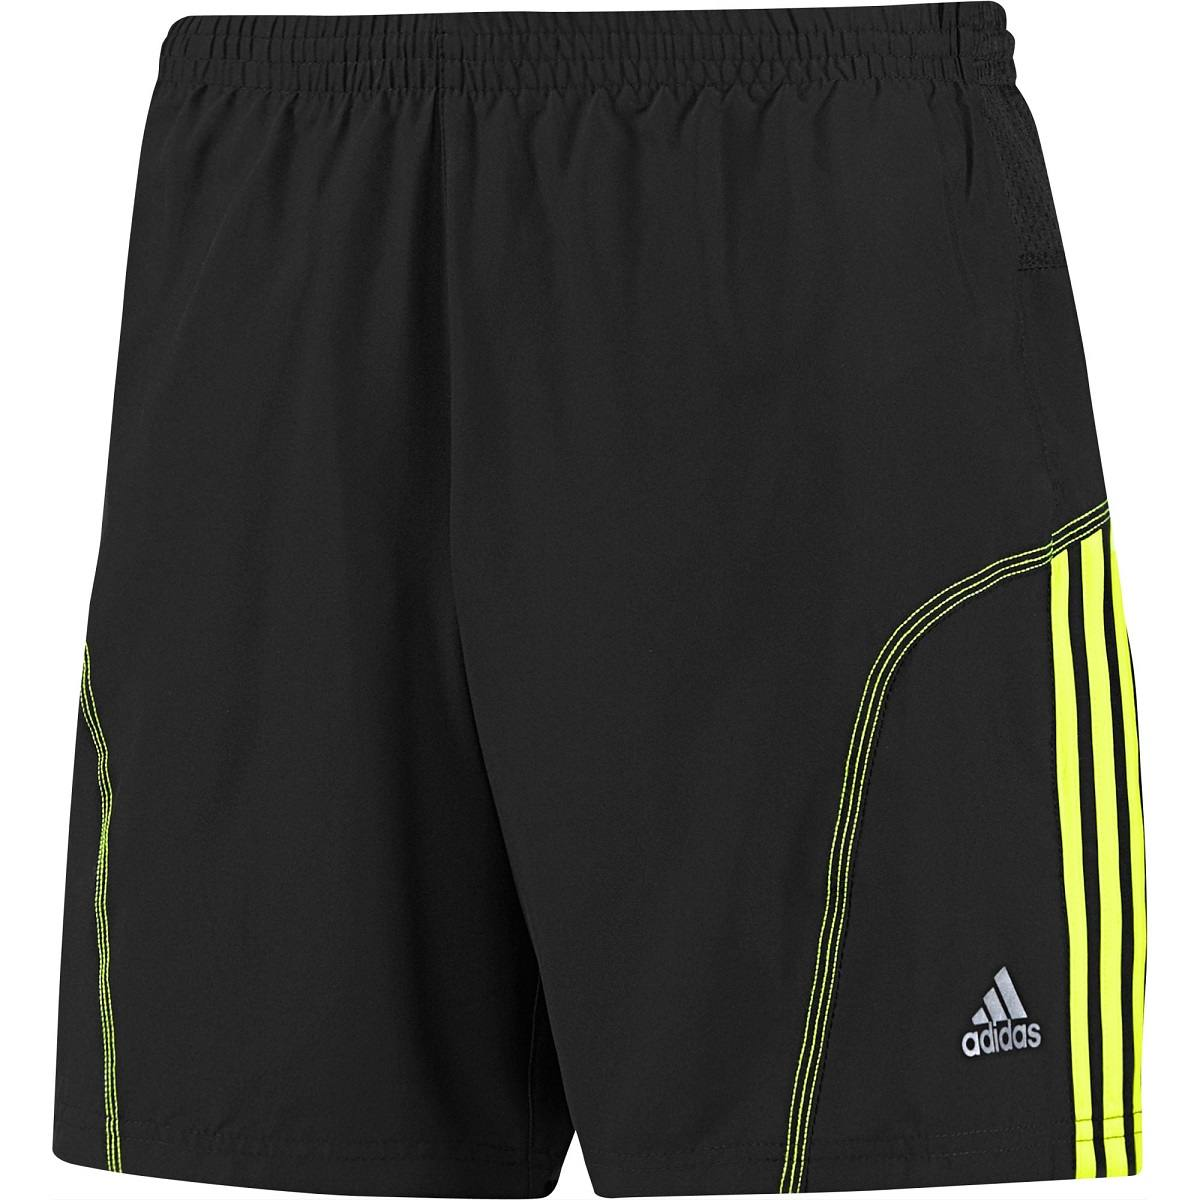 adidas response 3 stripes 7 inch baggy shorts hose. Black Bedroom Furniture Sets. Home Design Ideas